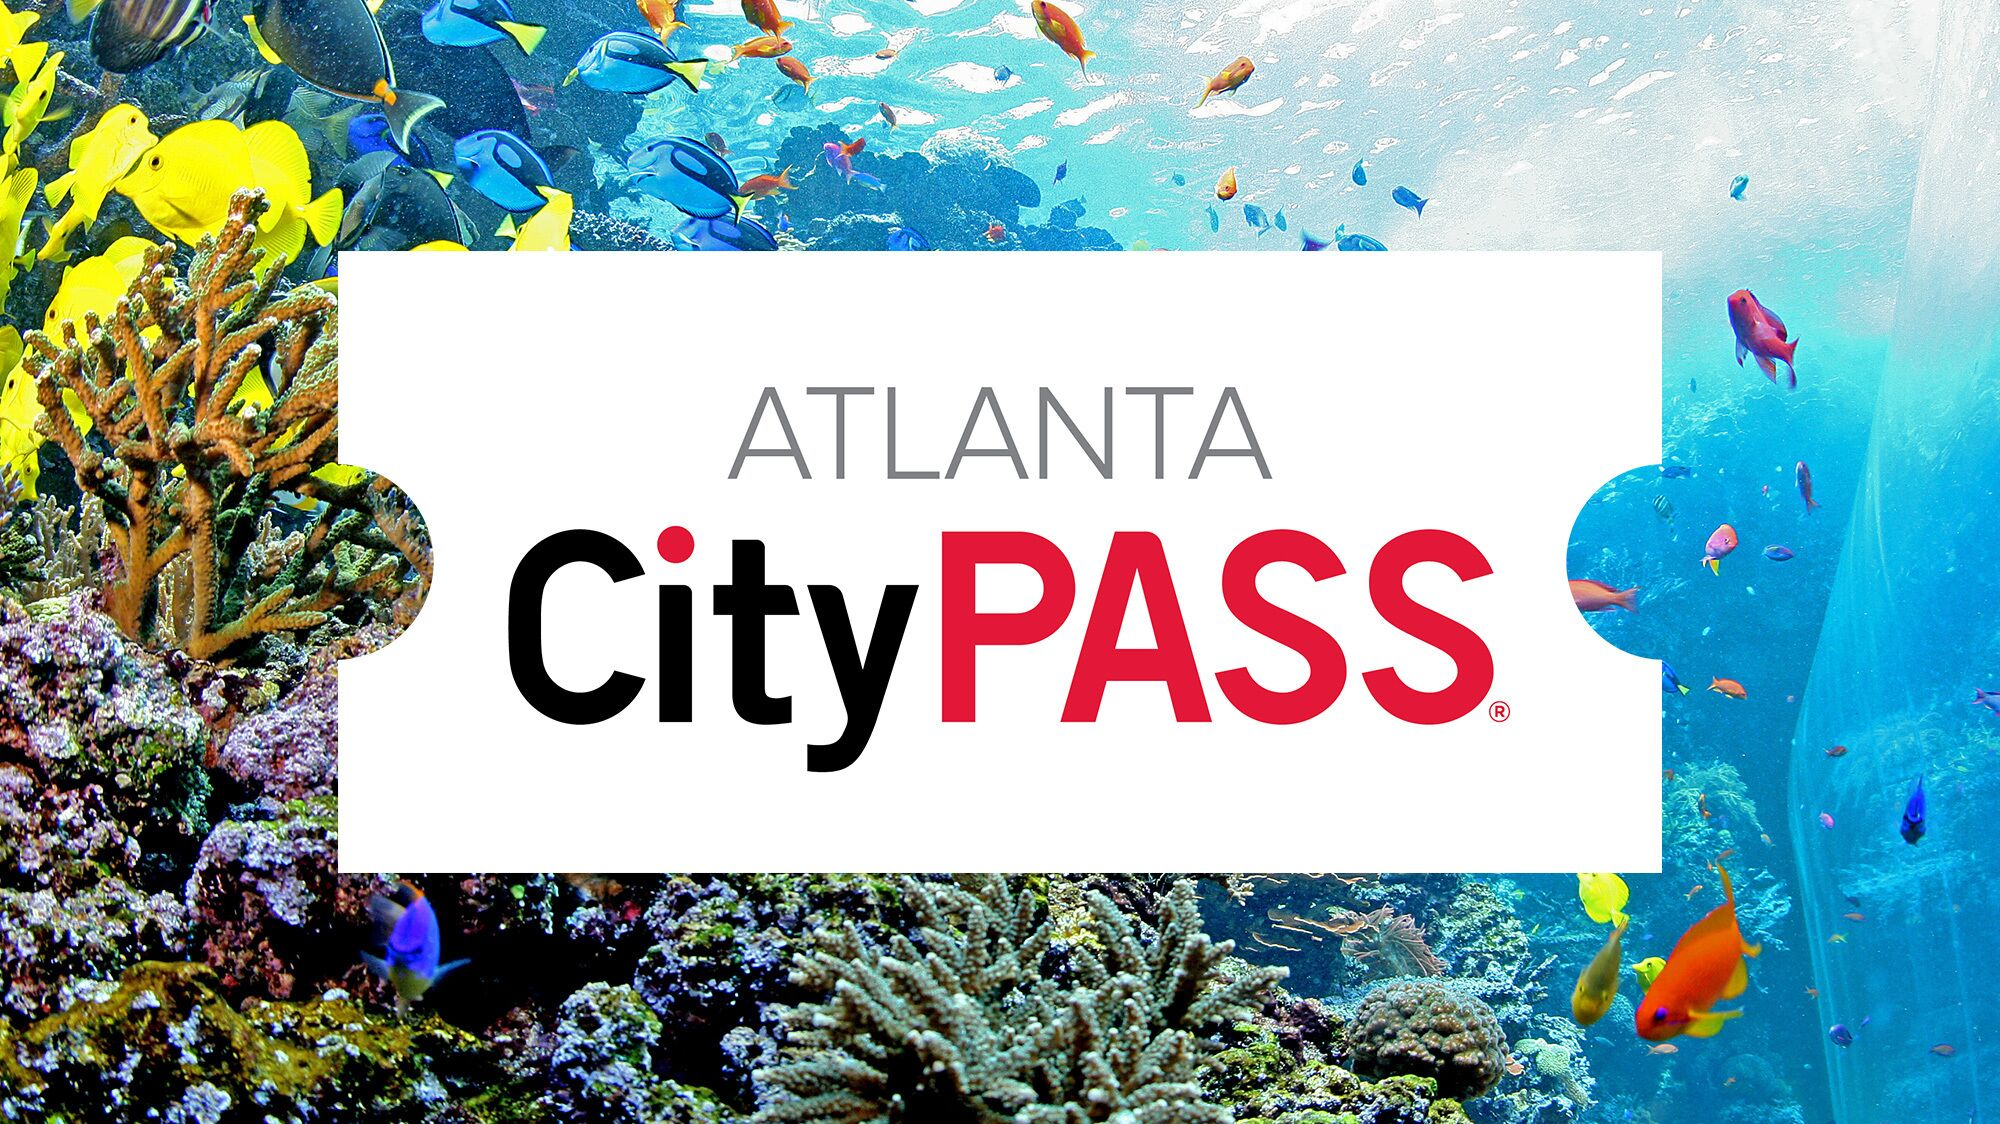 Atlanta CityPASS: 5 Must-See Museums & Attractions